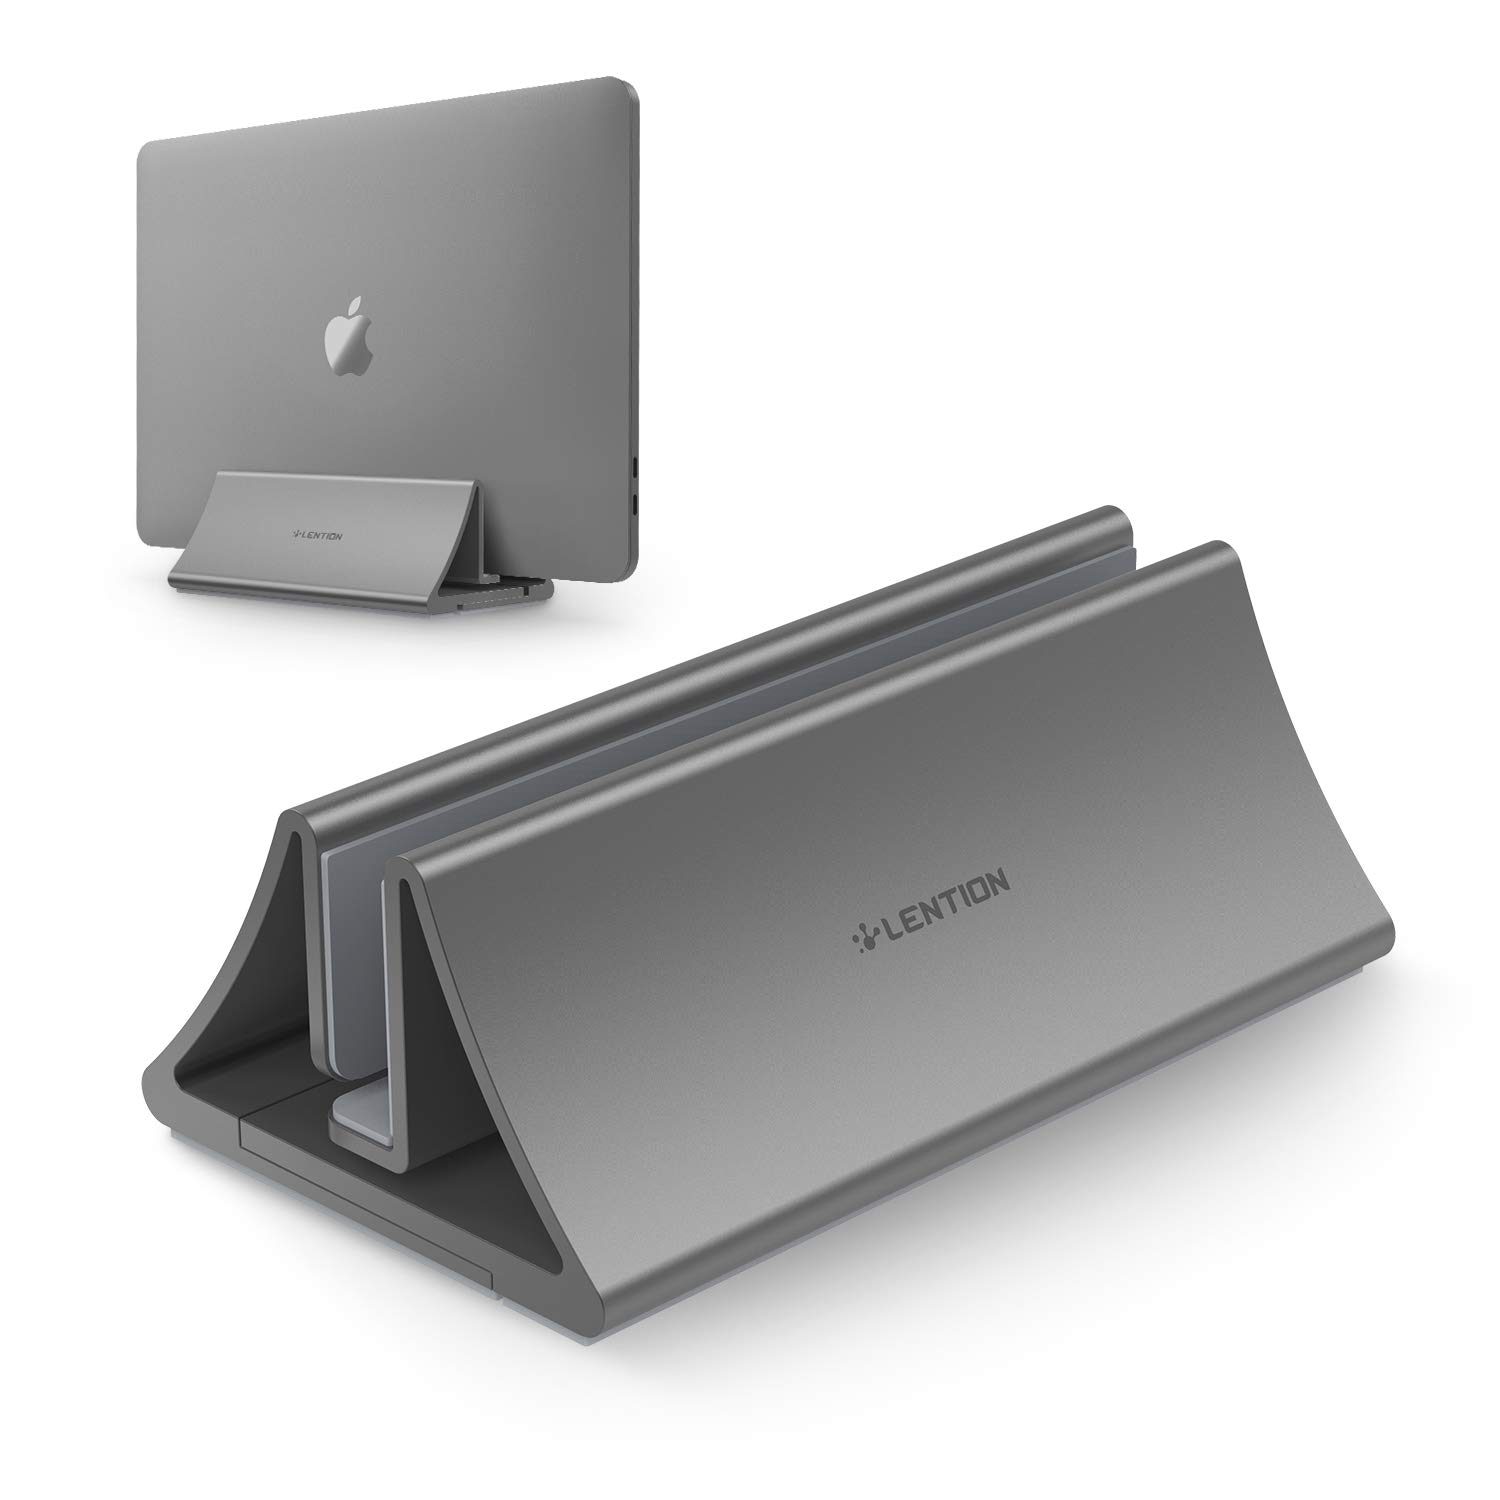 Aluminum Space-Saving Vertical Desktop Stand For MacBook Air/Pro 13 15, IPad Pro 12.9,  Chromebook And 11 To 17-inch Laptop